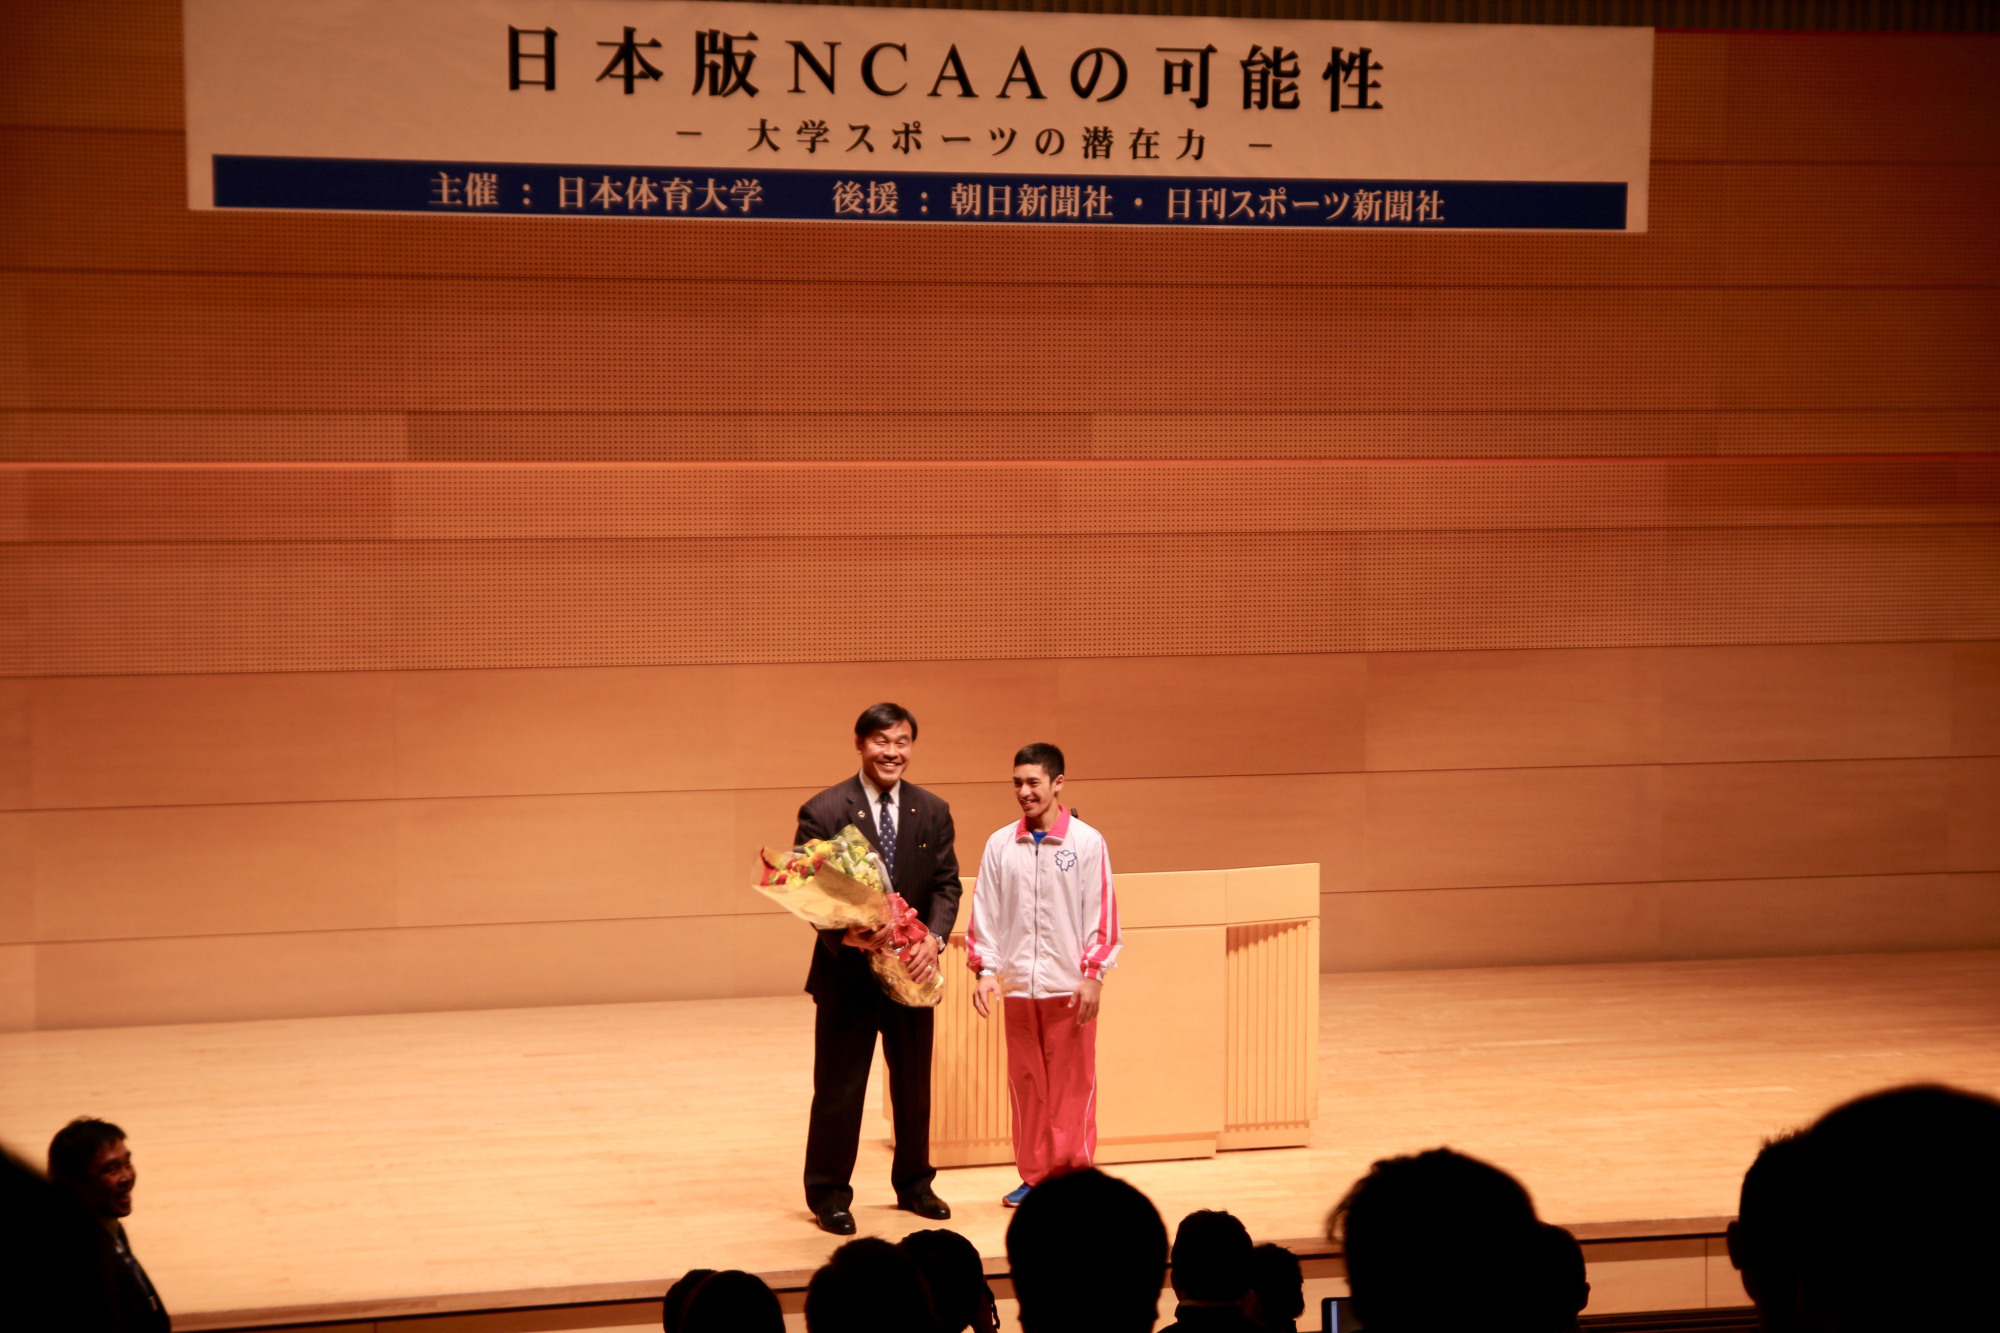 Former education minister and pro wrestler Hiroshi Hase (left) stands with gymnast Kenzo Shirai during a symposium on the creation of a Japanese version of the NCAA on Saturday at Nippon Sport Science University.   KAZ NAGATSUKA